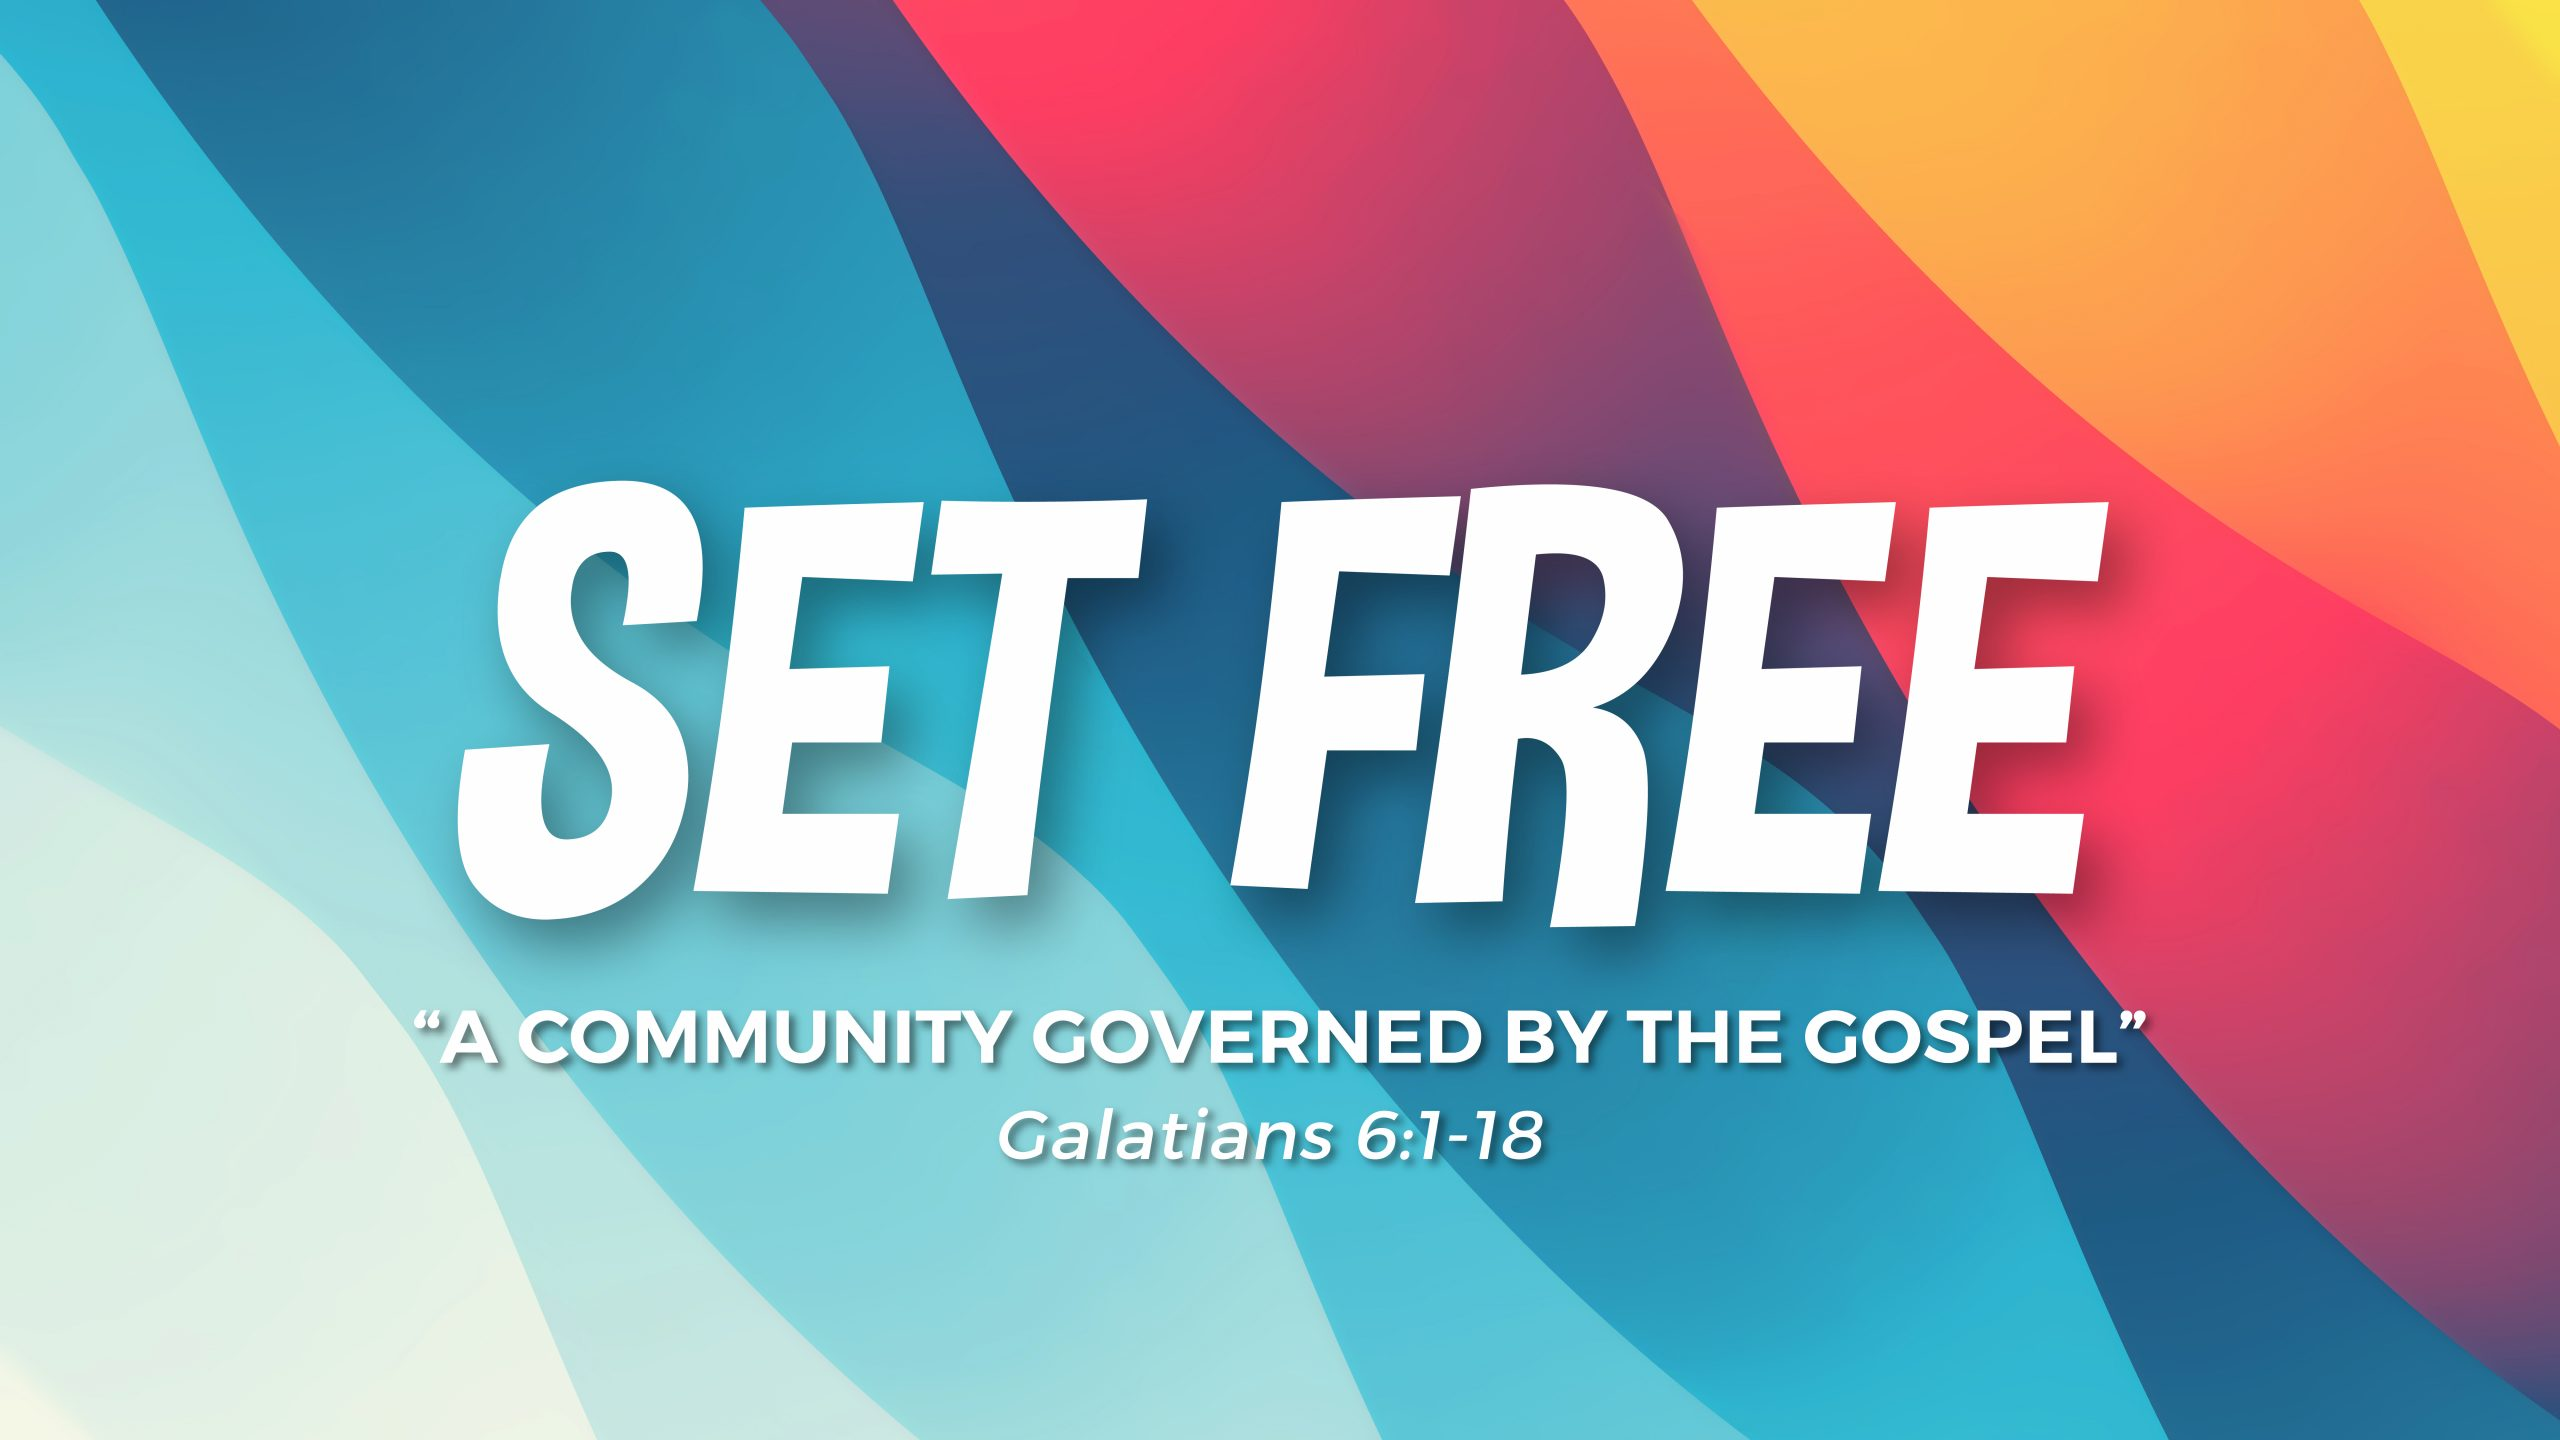 Set Free: A Community Governed by the Gospel